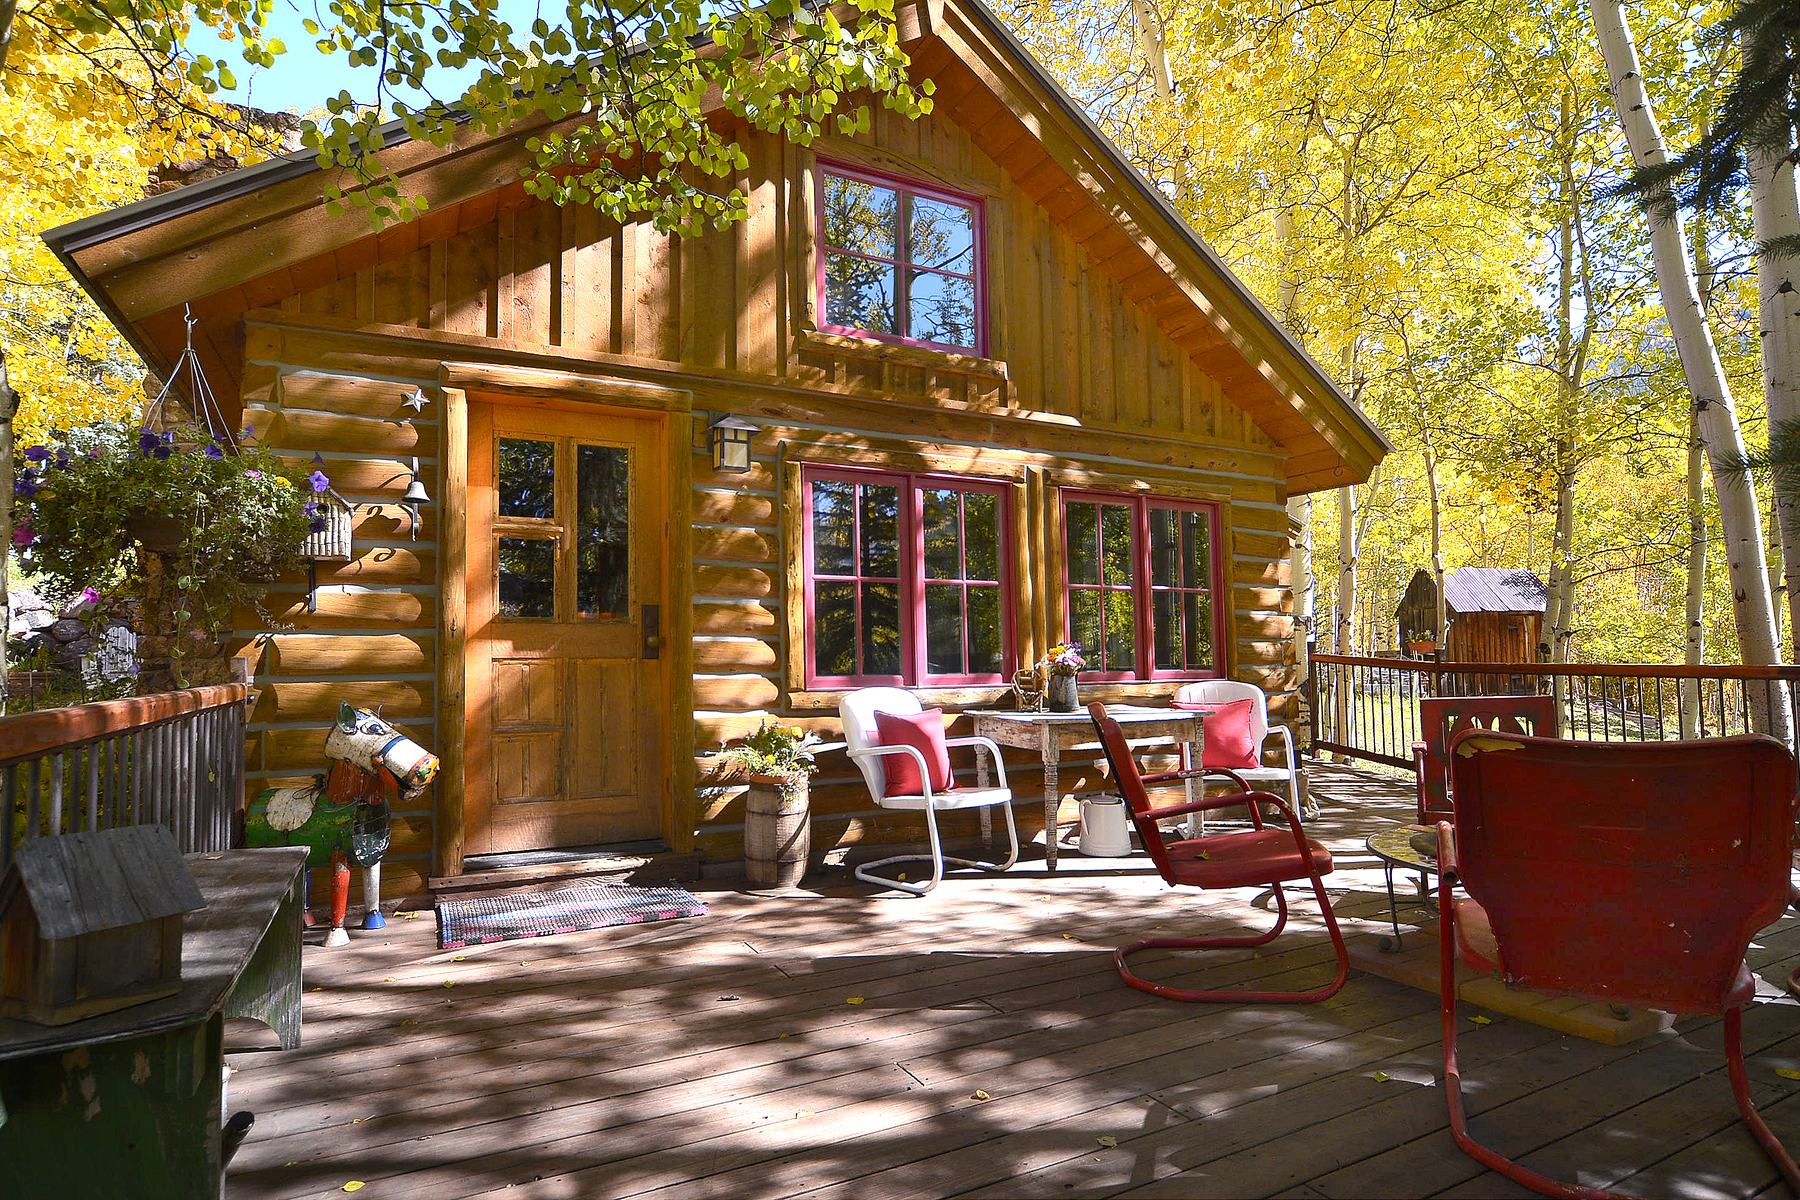 Moradia para Venda às Big Horn Ranch 6475 County Road 740 Crested Butte, Colorado, 81224 Estados Unidos